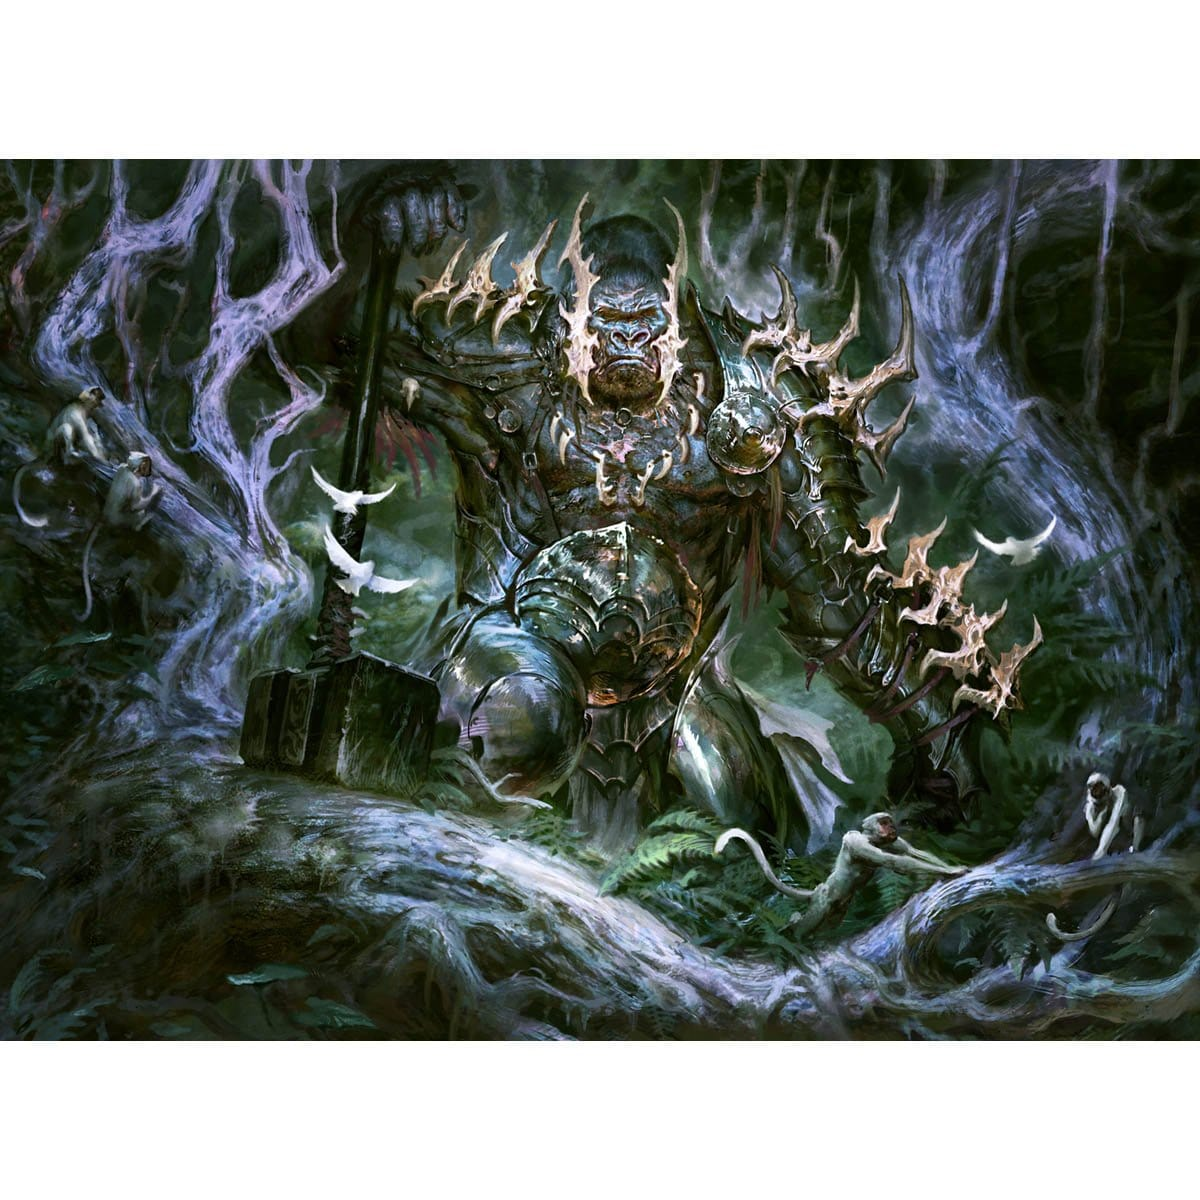 Grunn, the Lonely King Print - Print - Original Magic Art - Accessories for Magic the Gathering and other card games